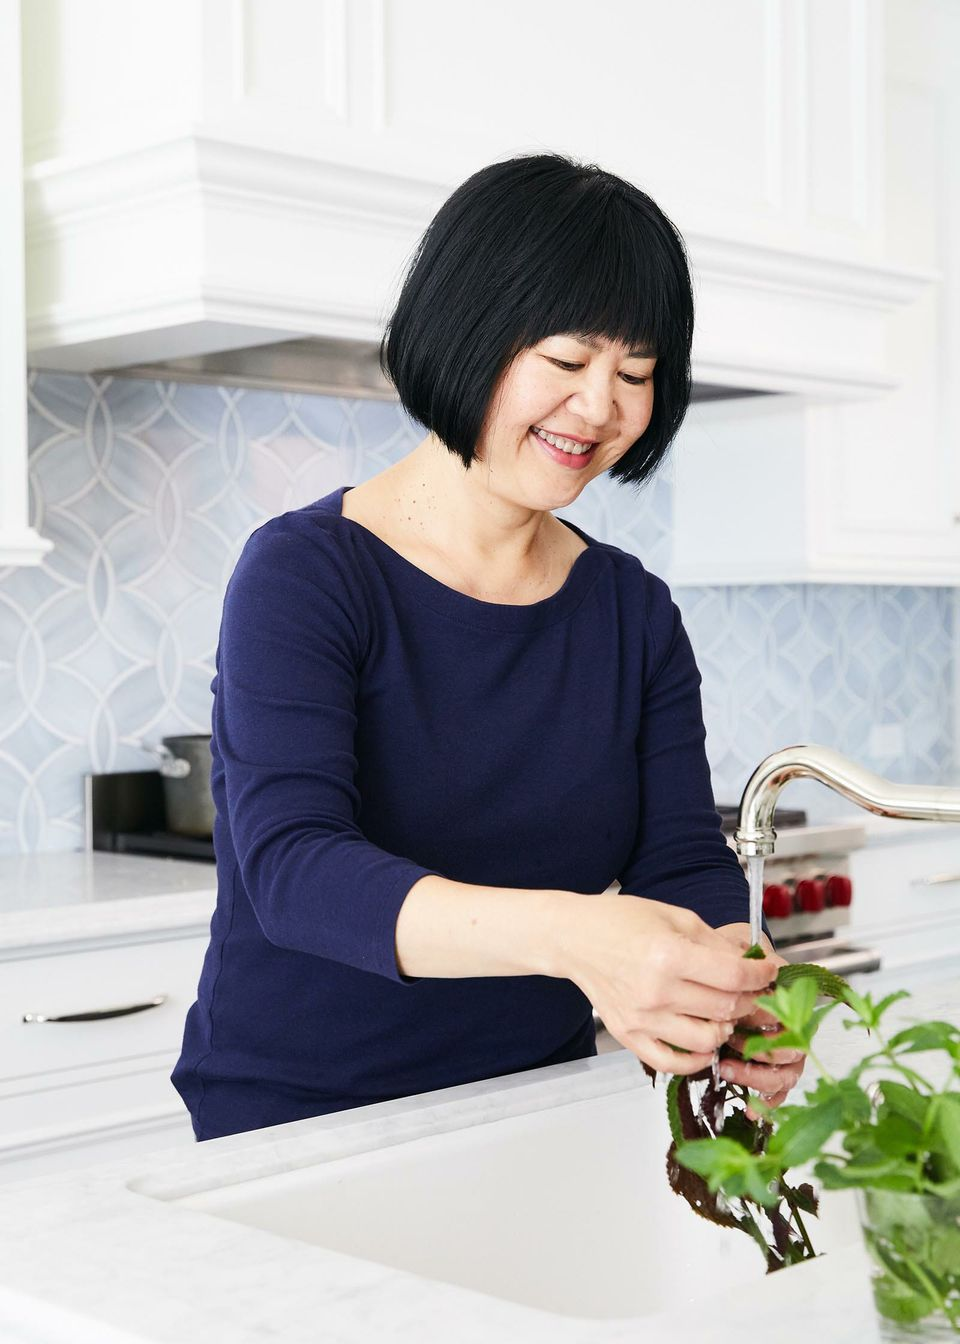 Andrea Nguyen smiling while standing at the kitchen sink rinsing off produce.